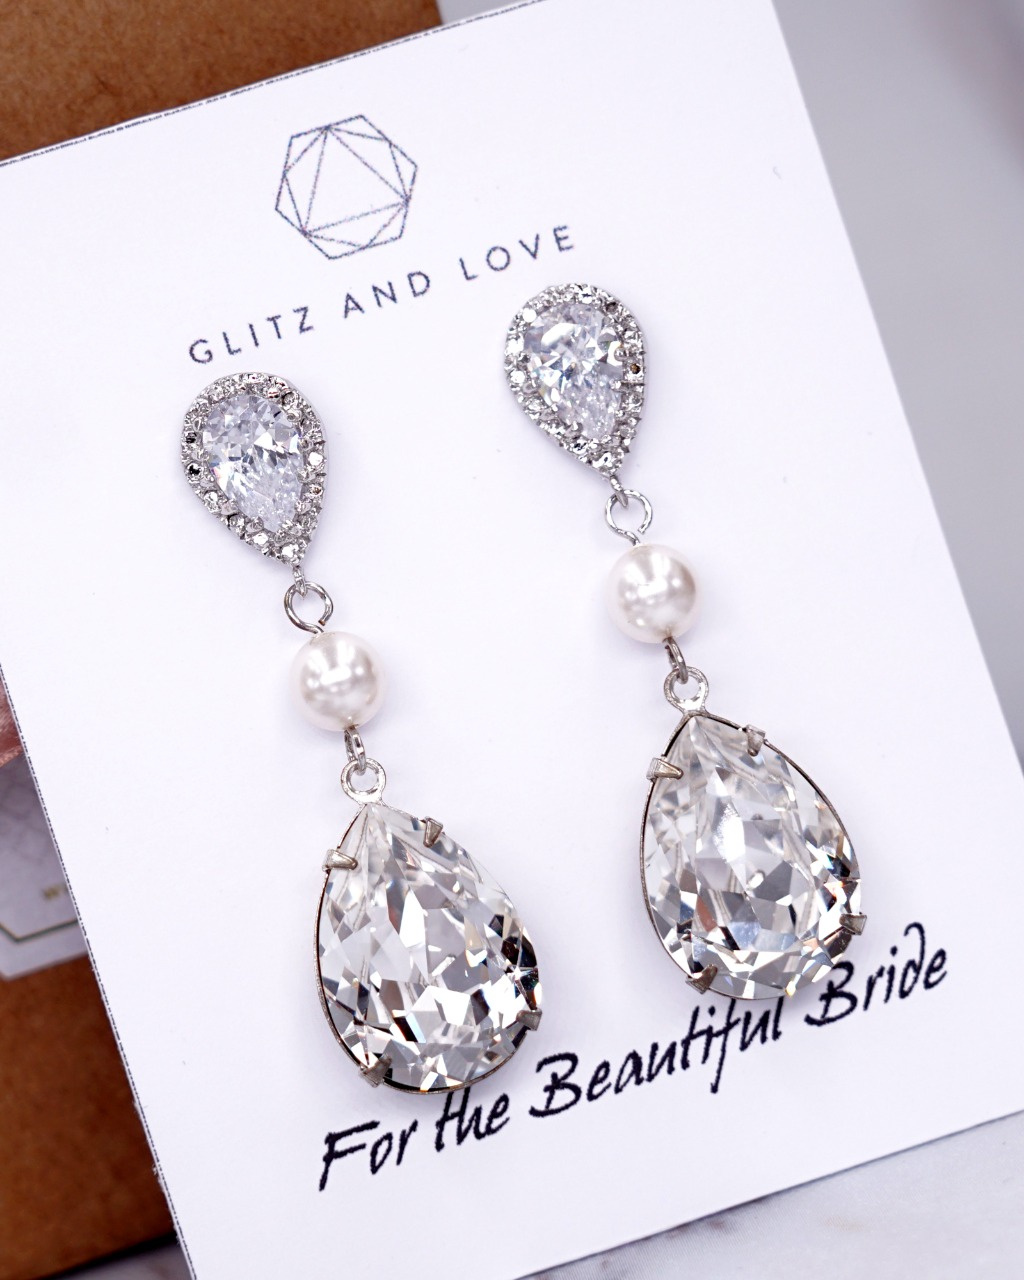 Welcome to Glitz & Love where you will find a collection of exquisite and intricately handcrafted pieces that include bridal fashion